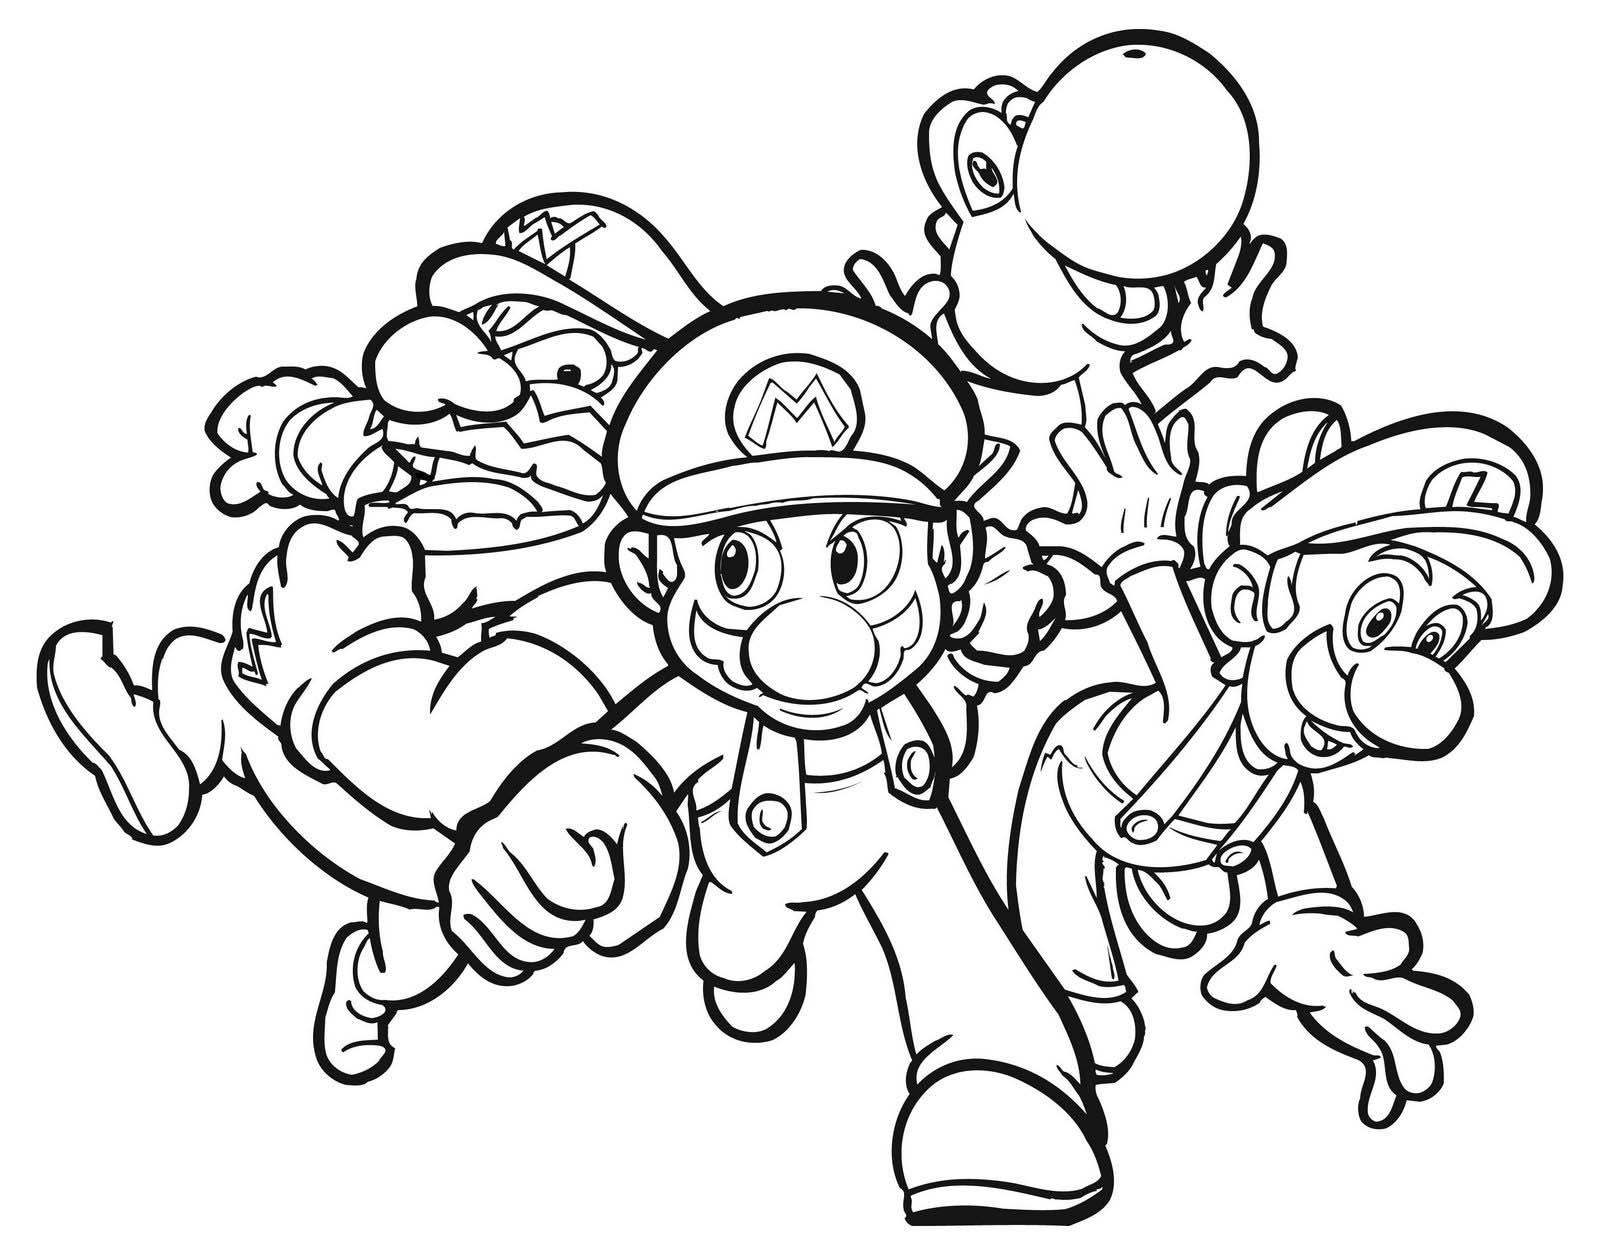 super mario brothers printables super mario bros coloring pages free large images brothers mario super printables